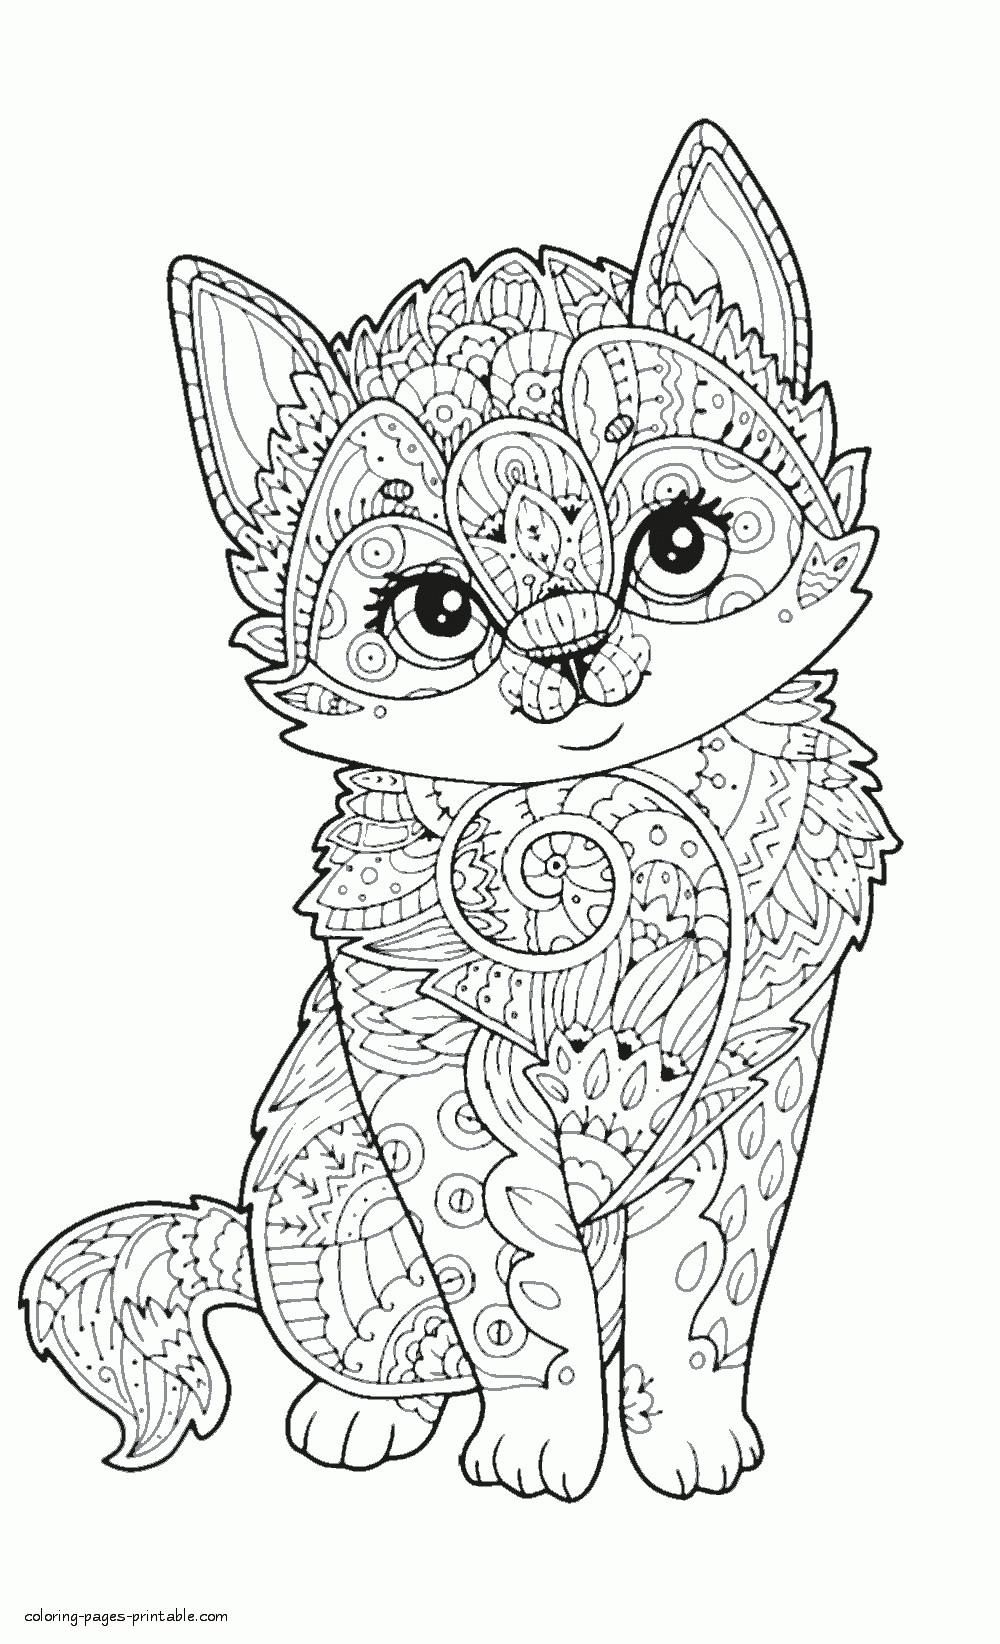 Free Printable Animal Coloring Pages For Adults in 2020